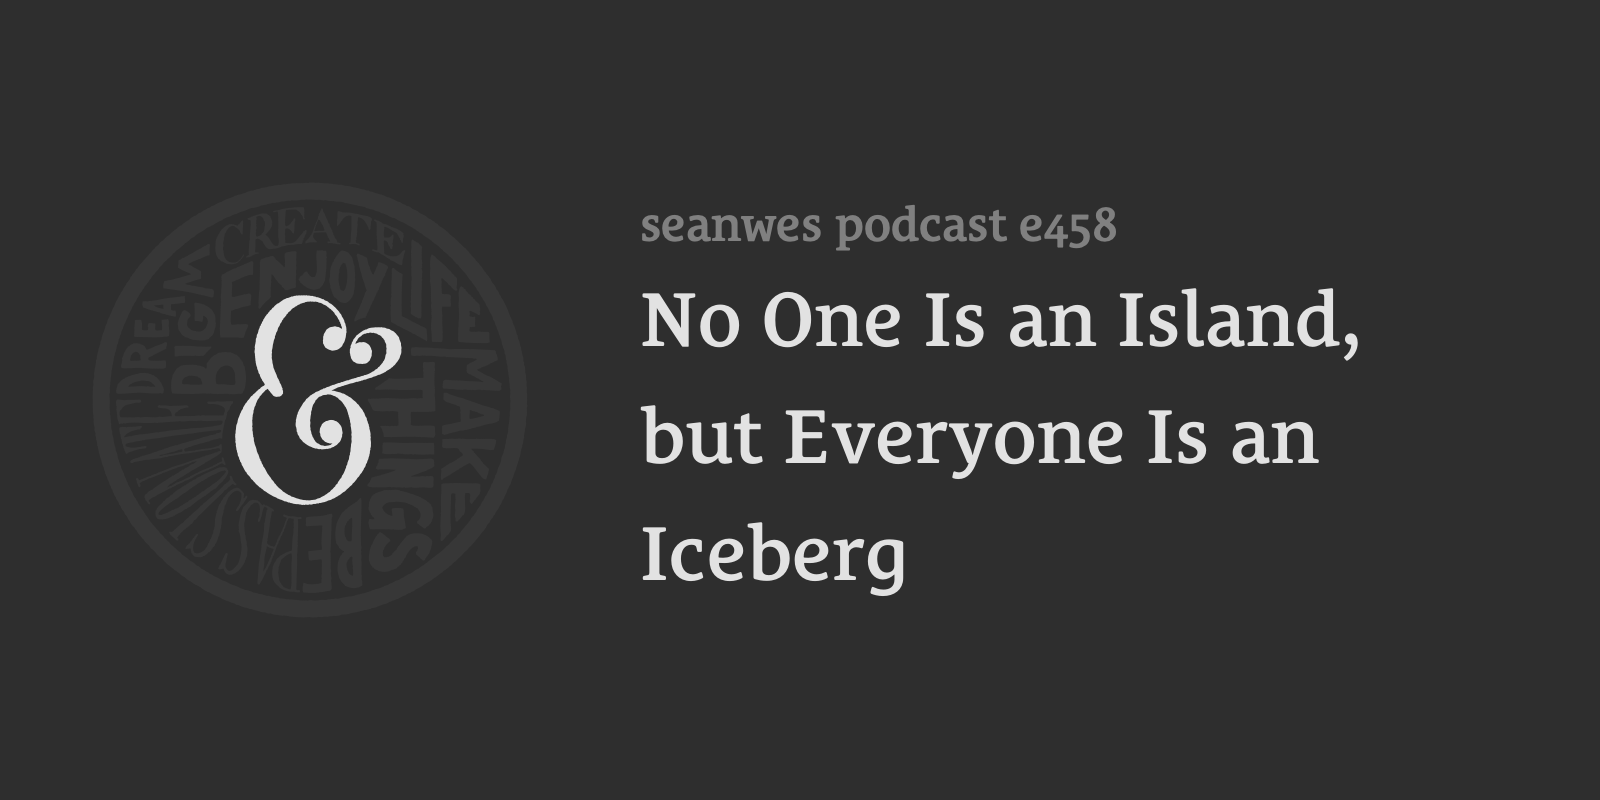 seanwes podcast: No One Is an Island, but Everyone Is an Iceberg